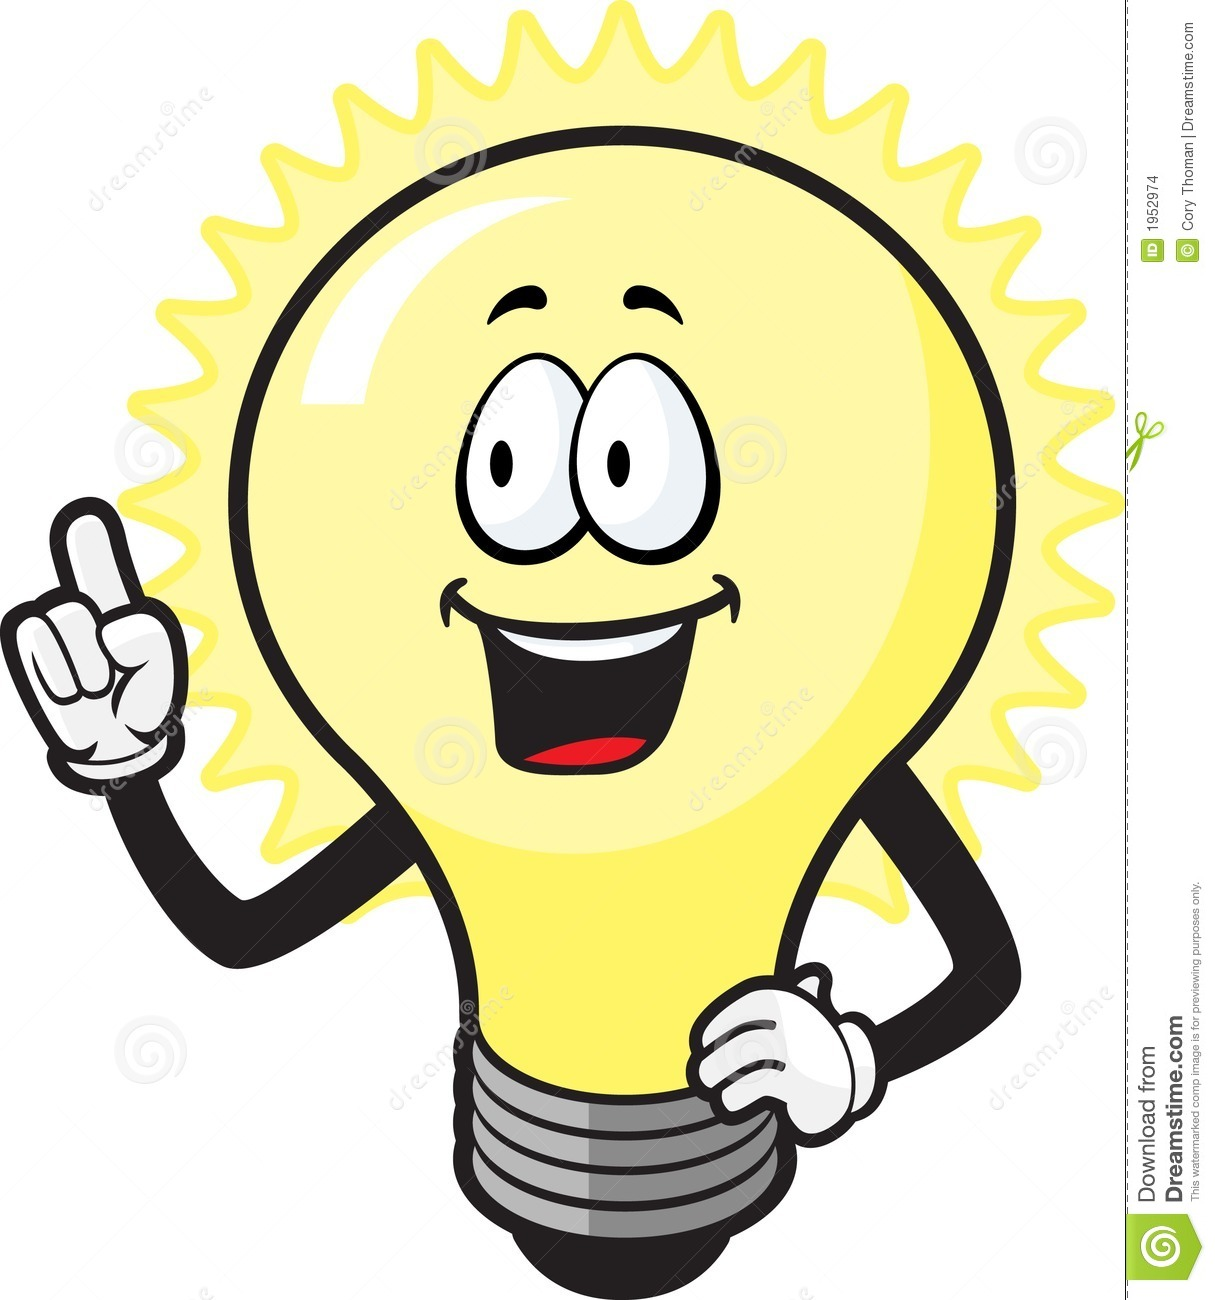 Lightbulb moment clipart clipart transparent library Light Bulb Image | Free download best Light Bulb Image on ClipArtMag.com clipart transparent library